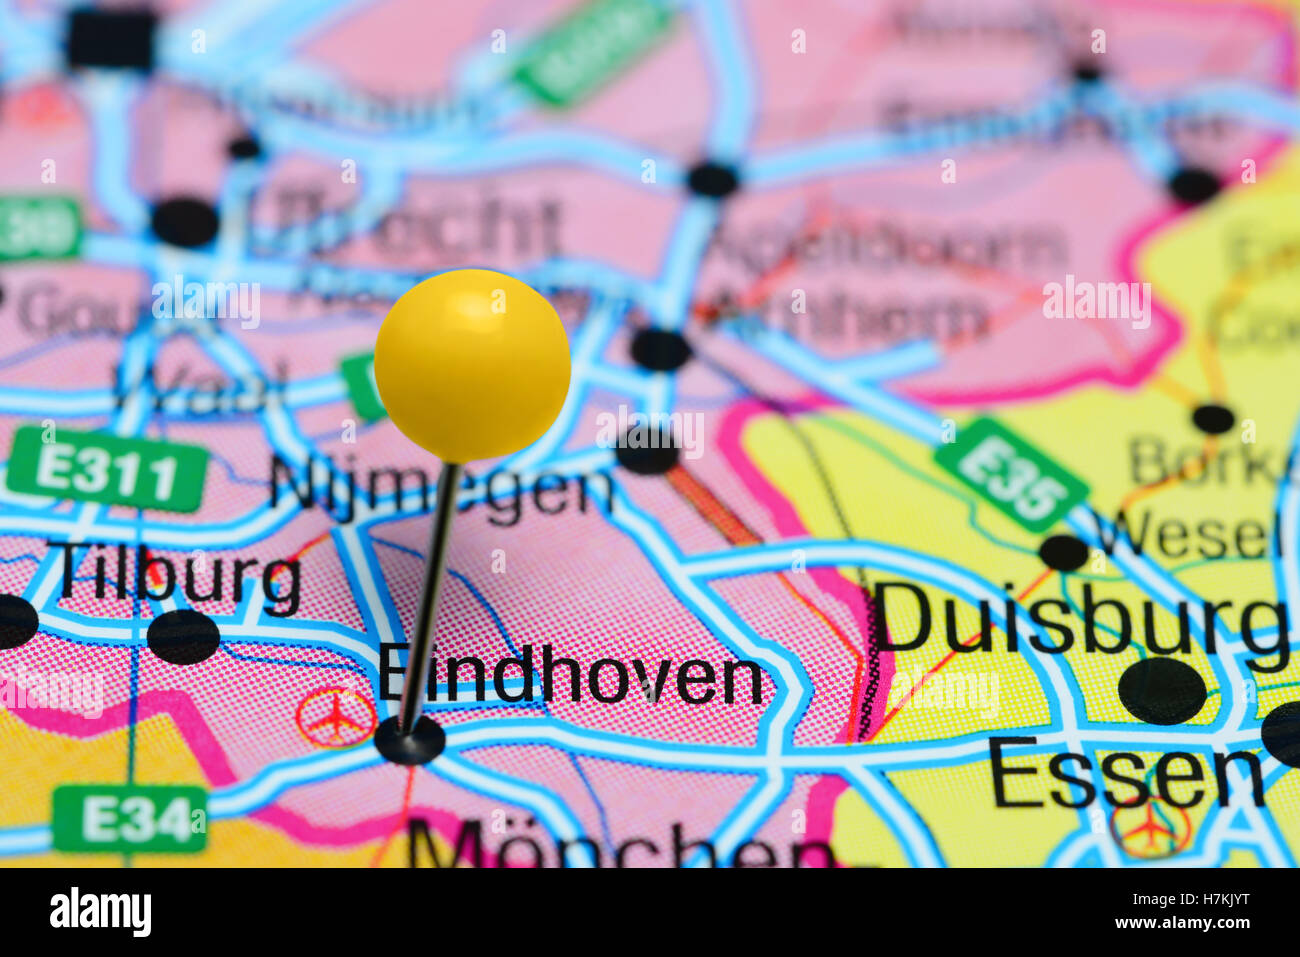 Eindhoven pinned on a map of Netherlands Stock Photo: 125207148 - Alamy